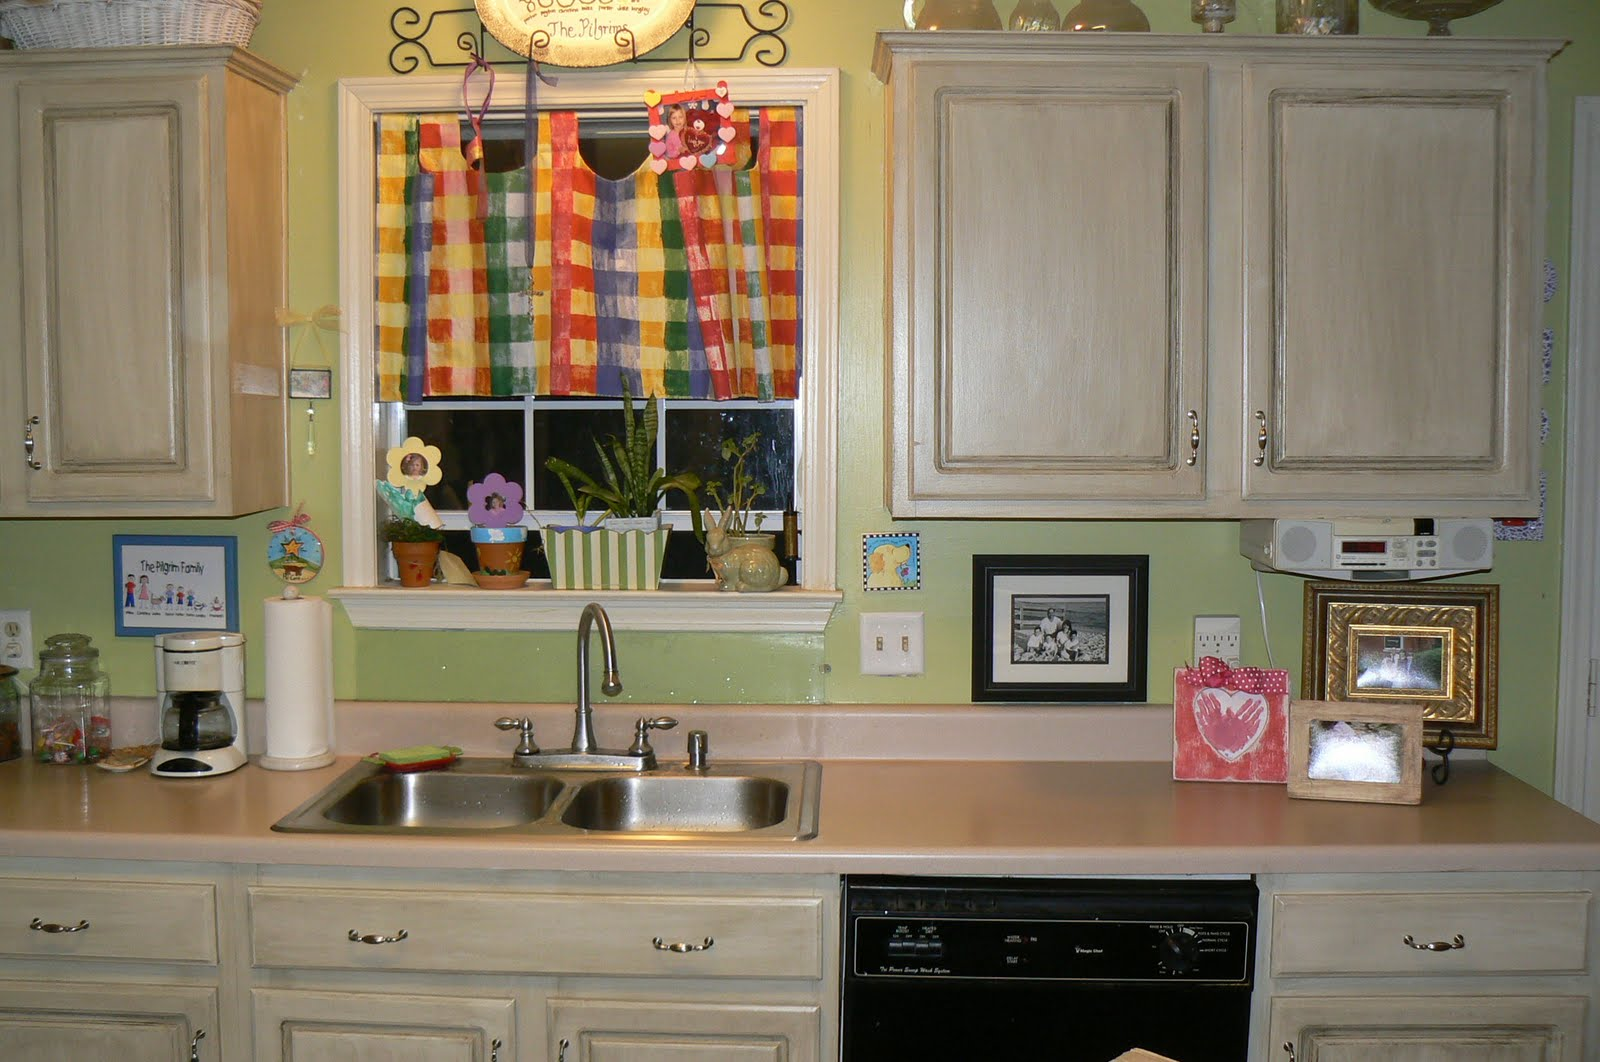 Old Fashioned Paint Kitchen Cabinets and Glossy Sink under Colorful Window Blind unde Bright Light